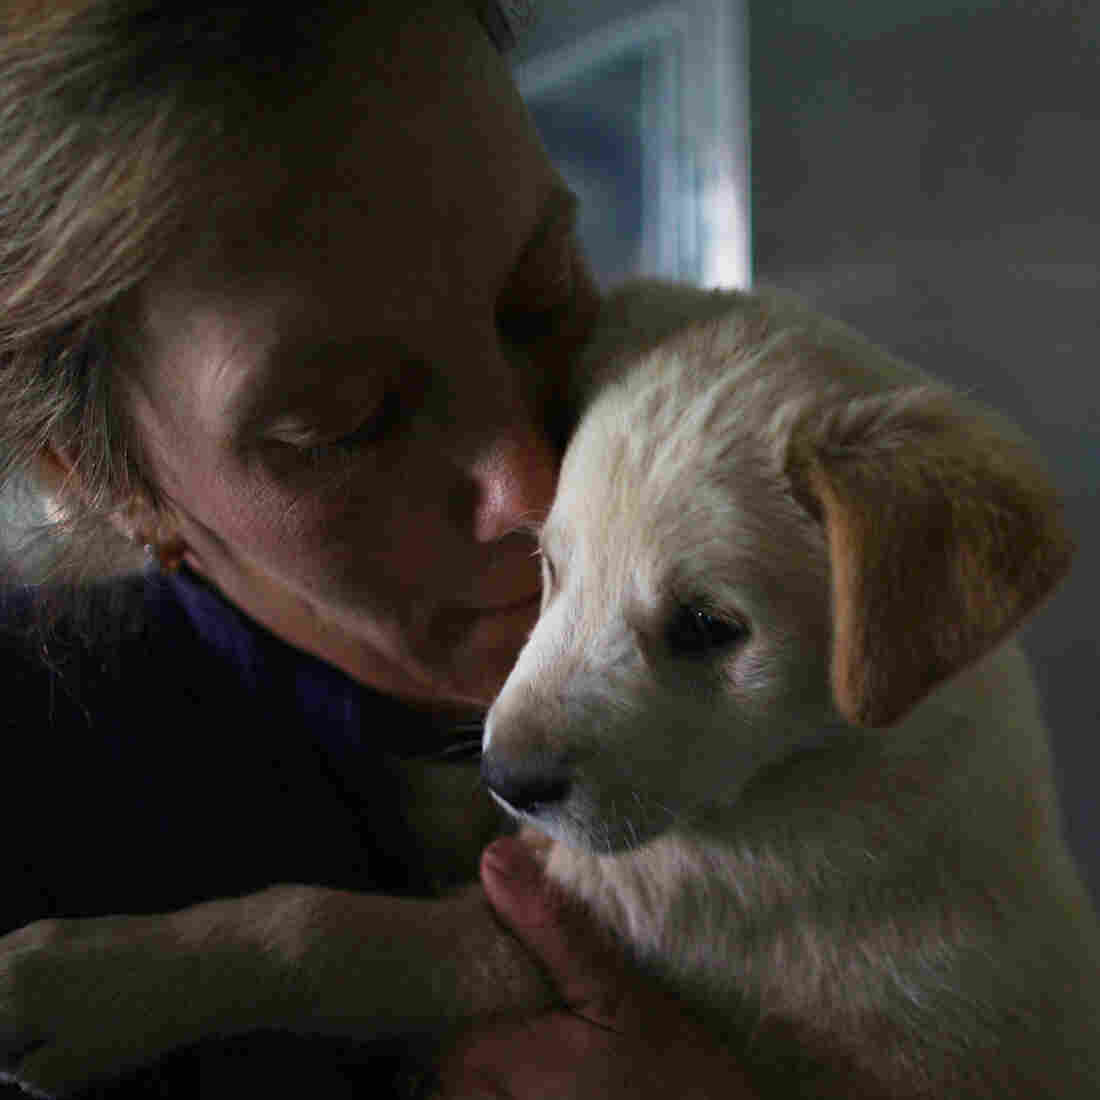 Louise Hastie, the shelter manager of Nowzad Dogs in Kabul, holds a stray puppy named Aki. Afghanistan has a large population of street cats and dogs. While there are no government programs to control the animals, foreigners have taken in some.